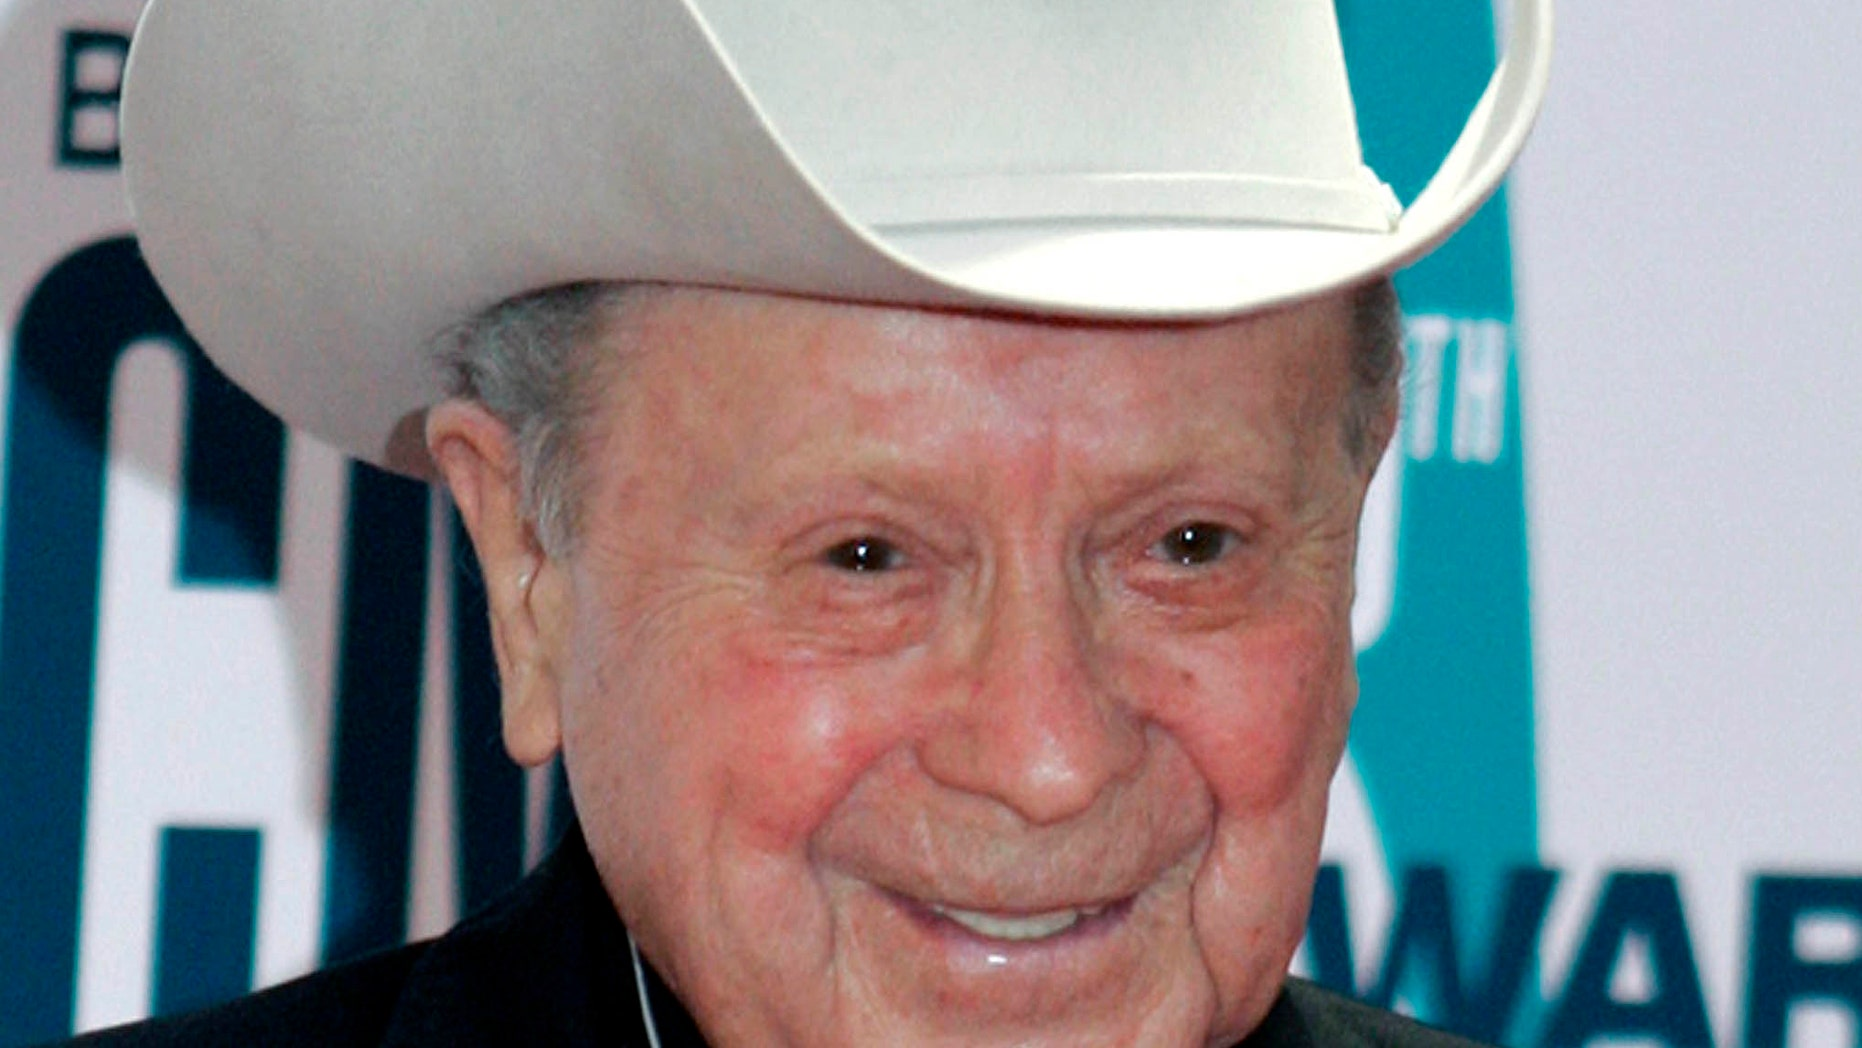 "FILE - In this Nov. 6, 2006 file photo, Grand Ole Opry star Little Jimmy Dickens arrives at the 40th Annual CMA Awards in Nashville, Tenn. Dickens has been hospitalized with an undisclosed illness. Jessie Schmidt, a publicist for the Opry, said in a news release Sunday, Dec. 28, 2014, that Dickens was admitted to a Nashville-area hospital on Dec. 25 and that he's in ""critical care."" (AP Photo/Chitose Suzuki, File)"